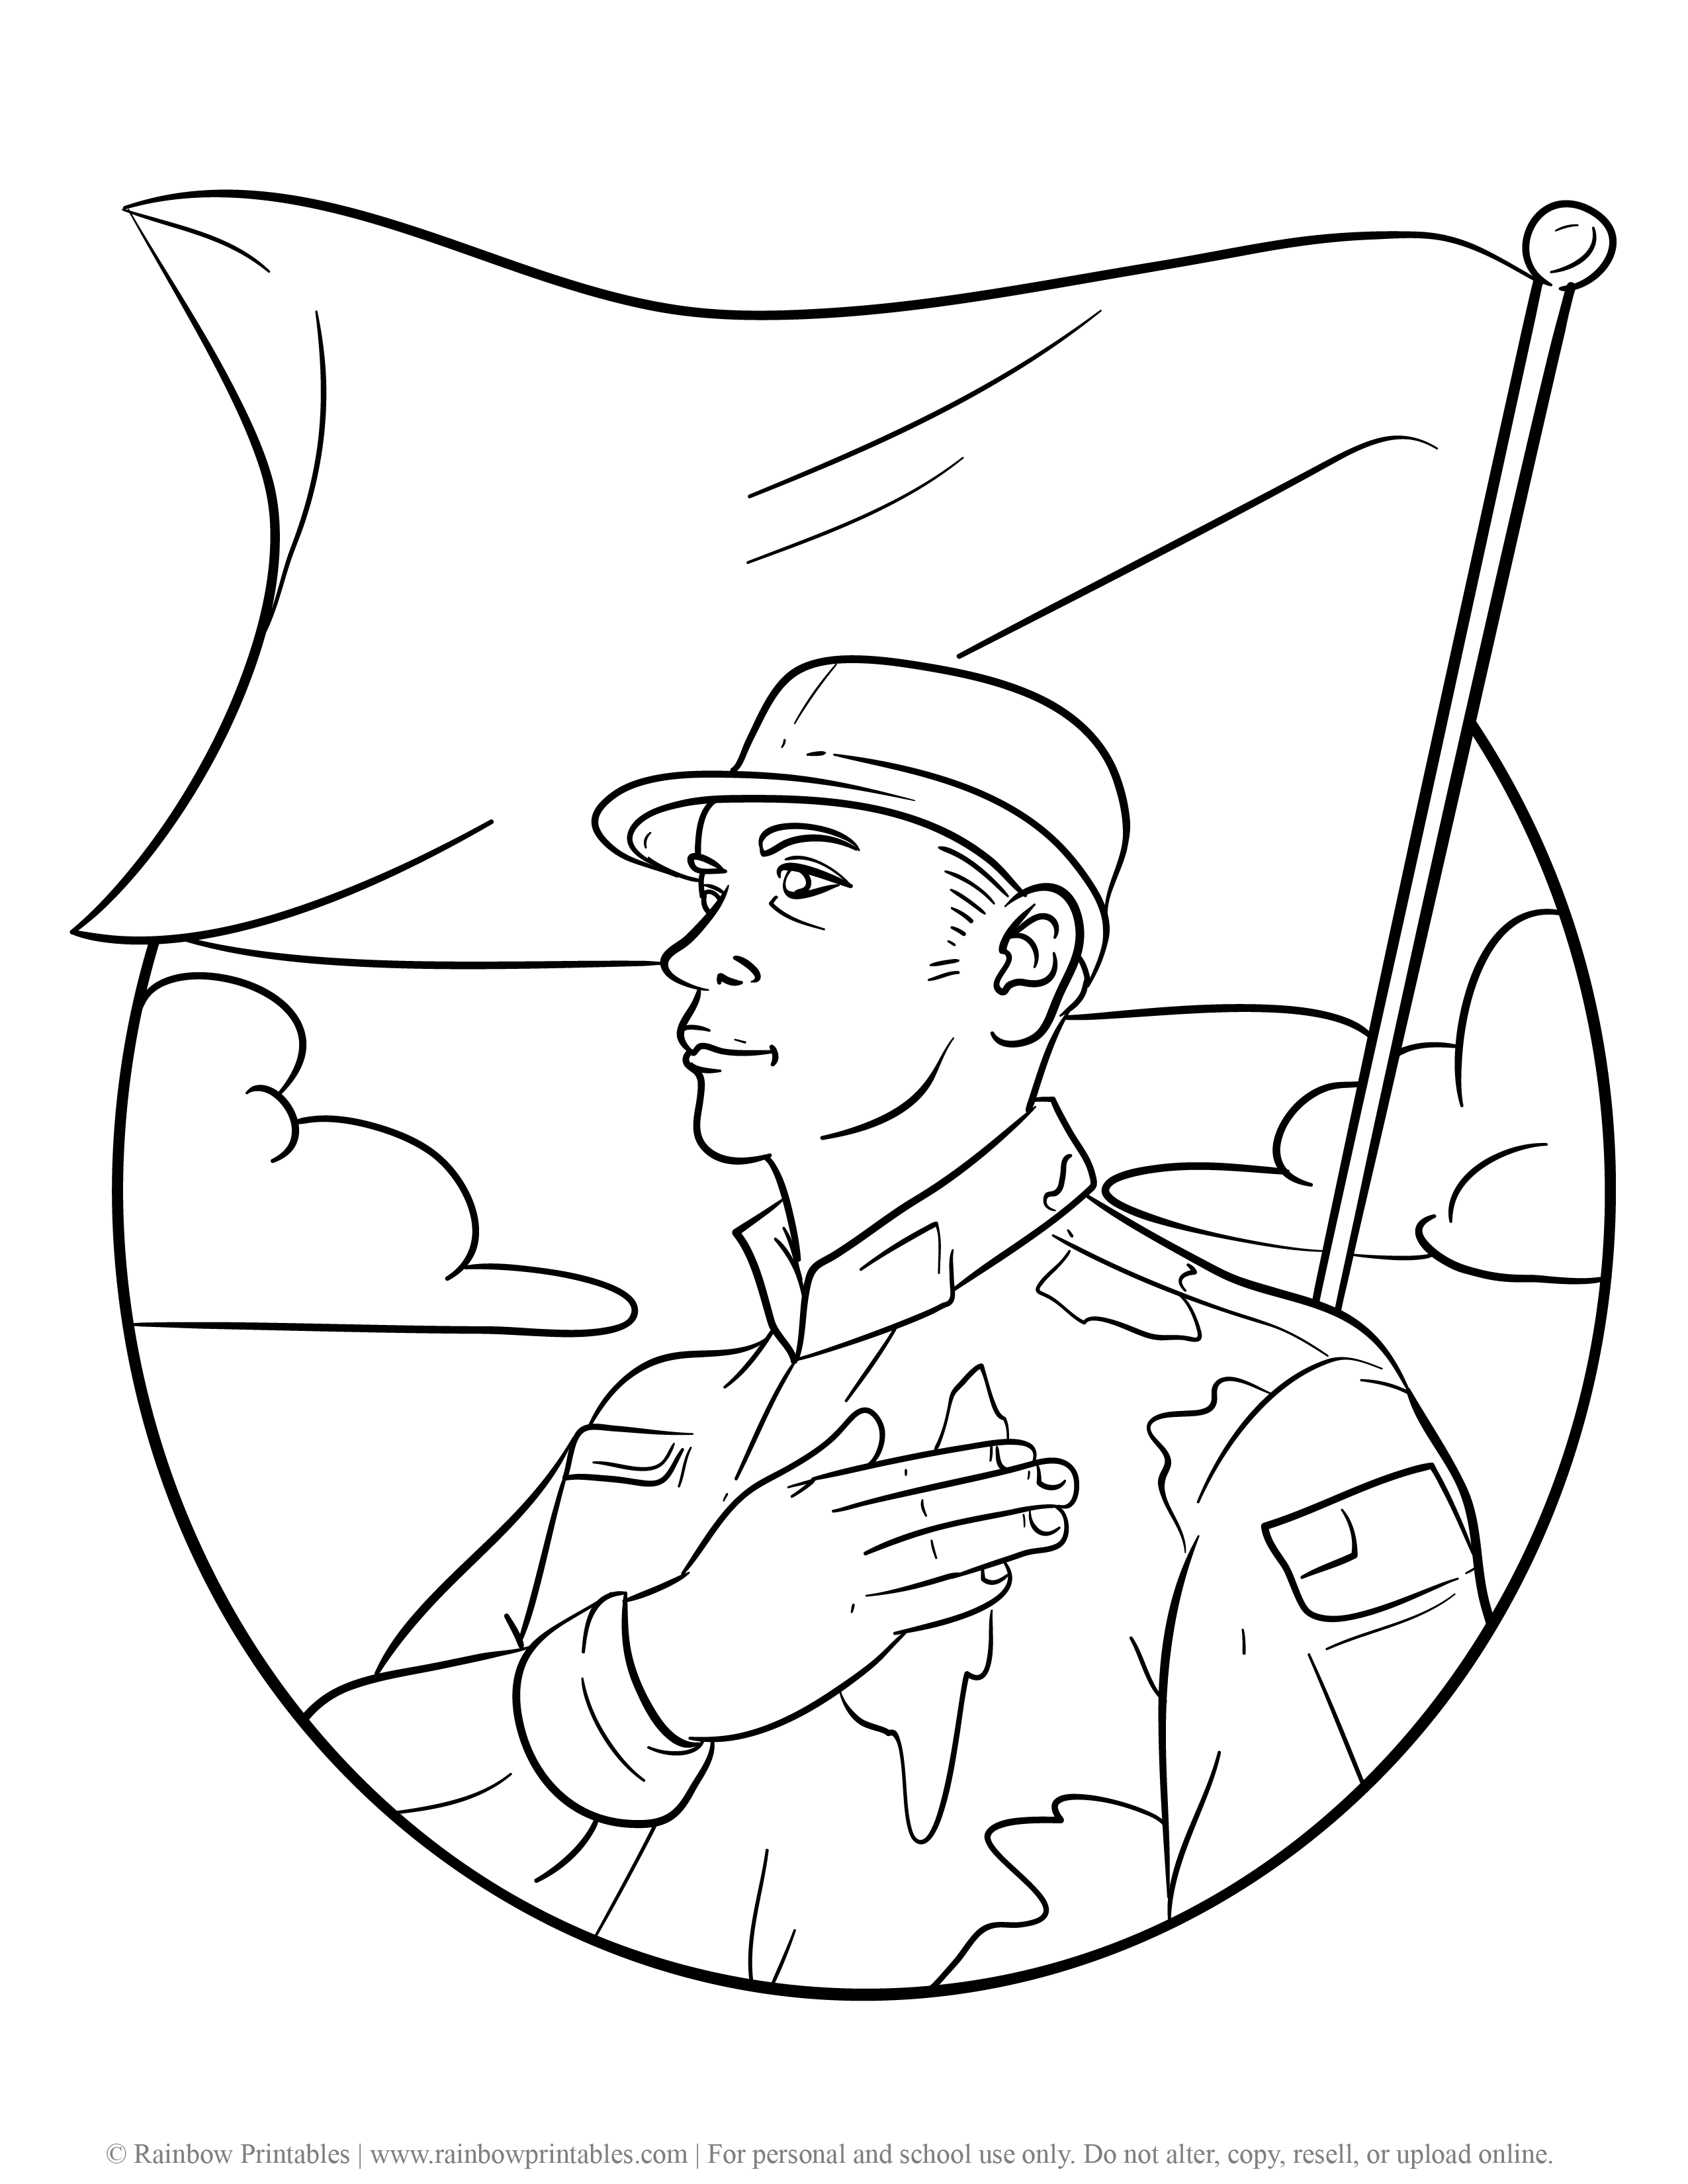 American Soldier Army Navy Coloring Pages For Kids Patriotic July 4th Independence Day Simple Easy Coloring Printables Sheet